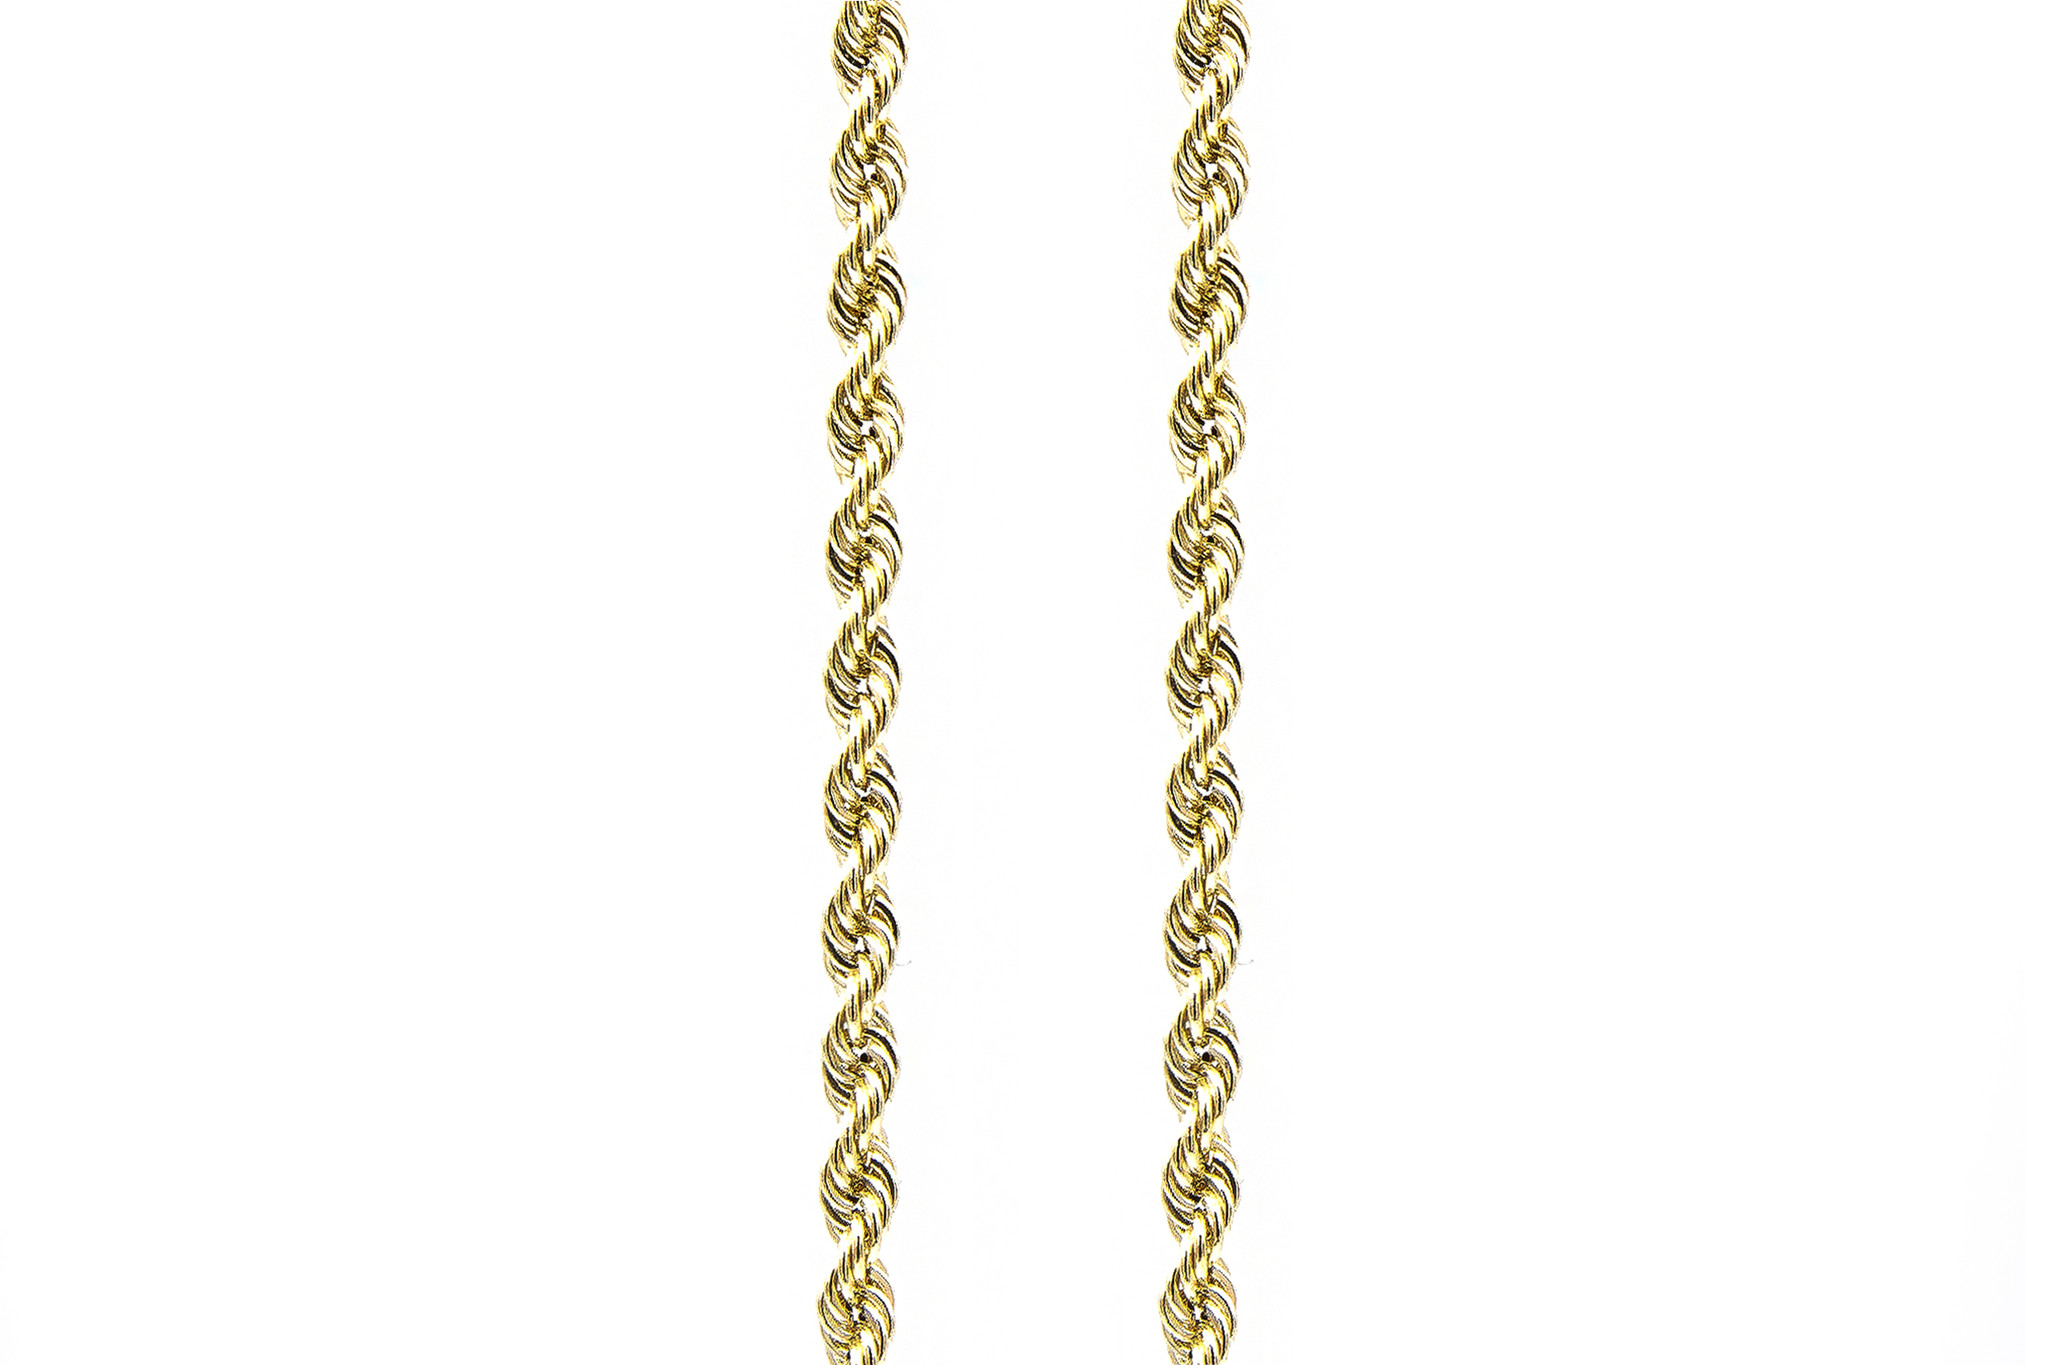 Rope Chain 14k-6 mm-5